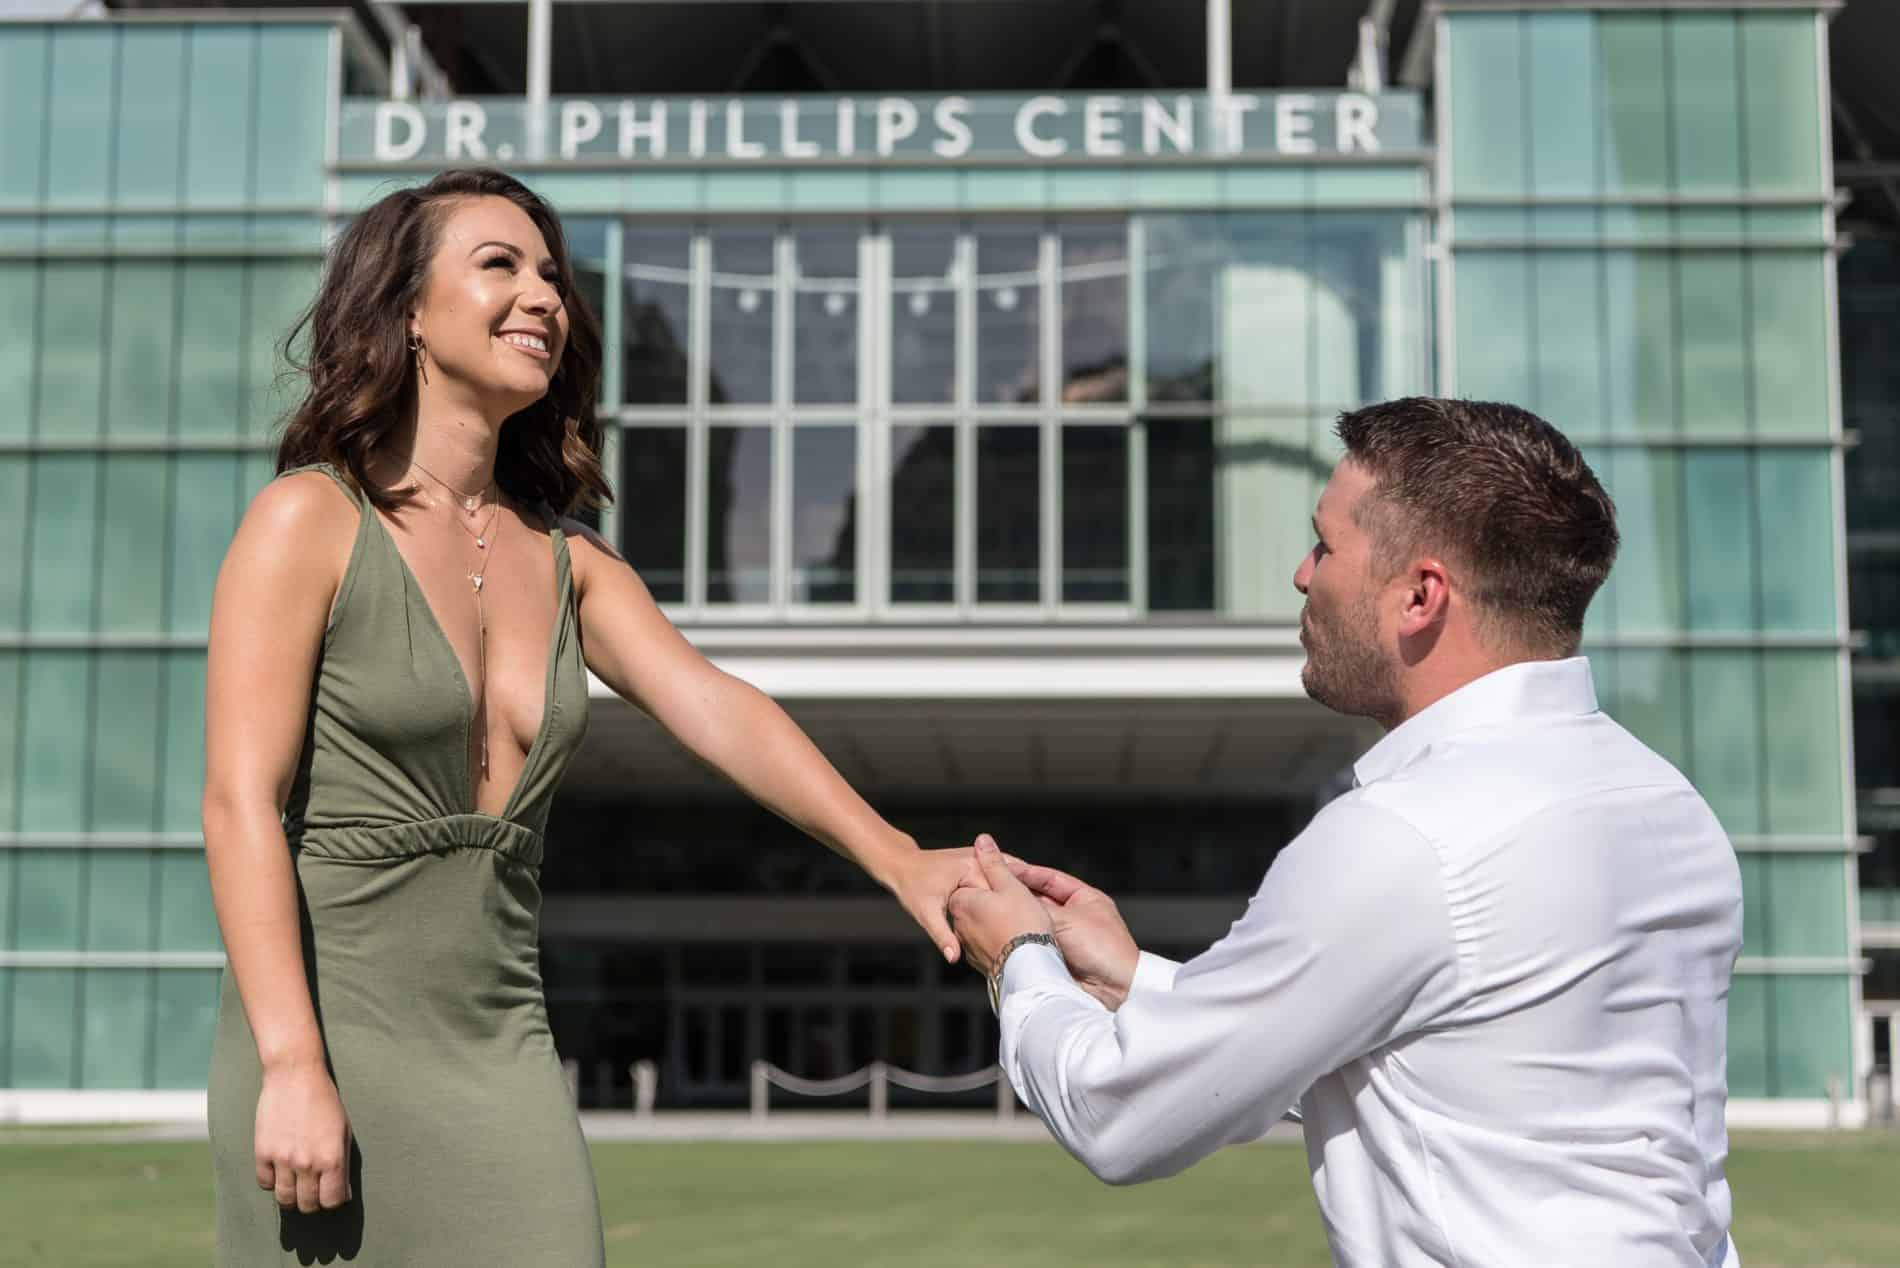 She reacts with a smile as he proposes